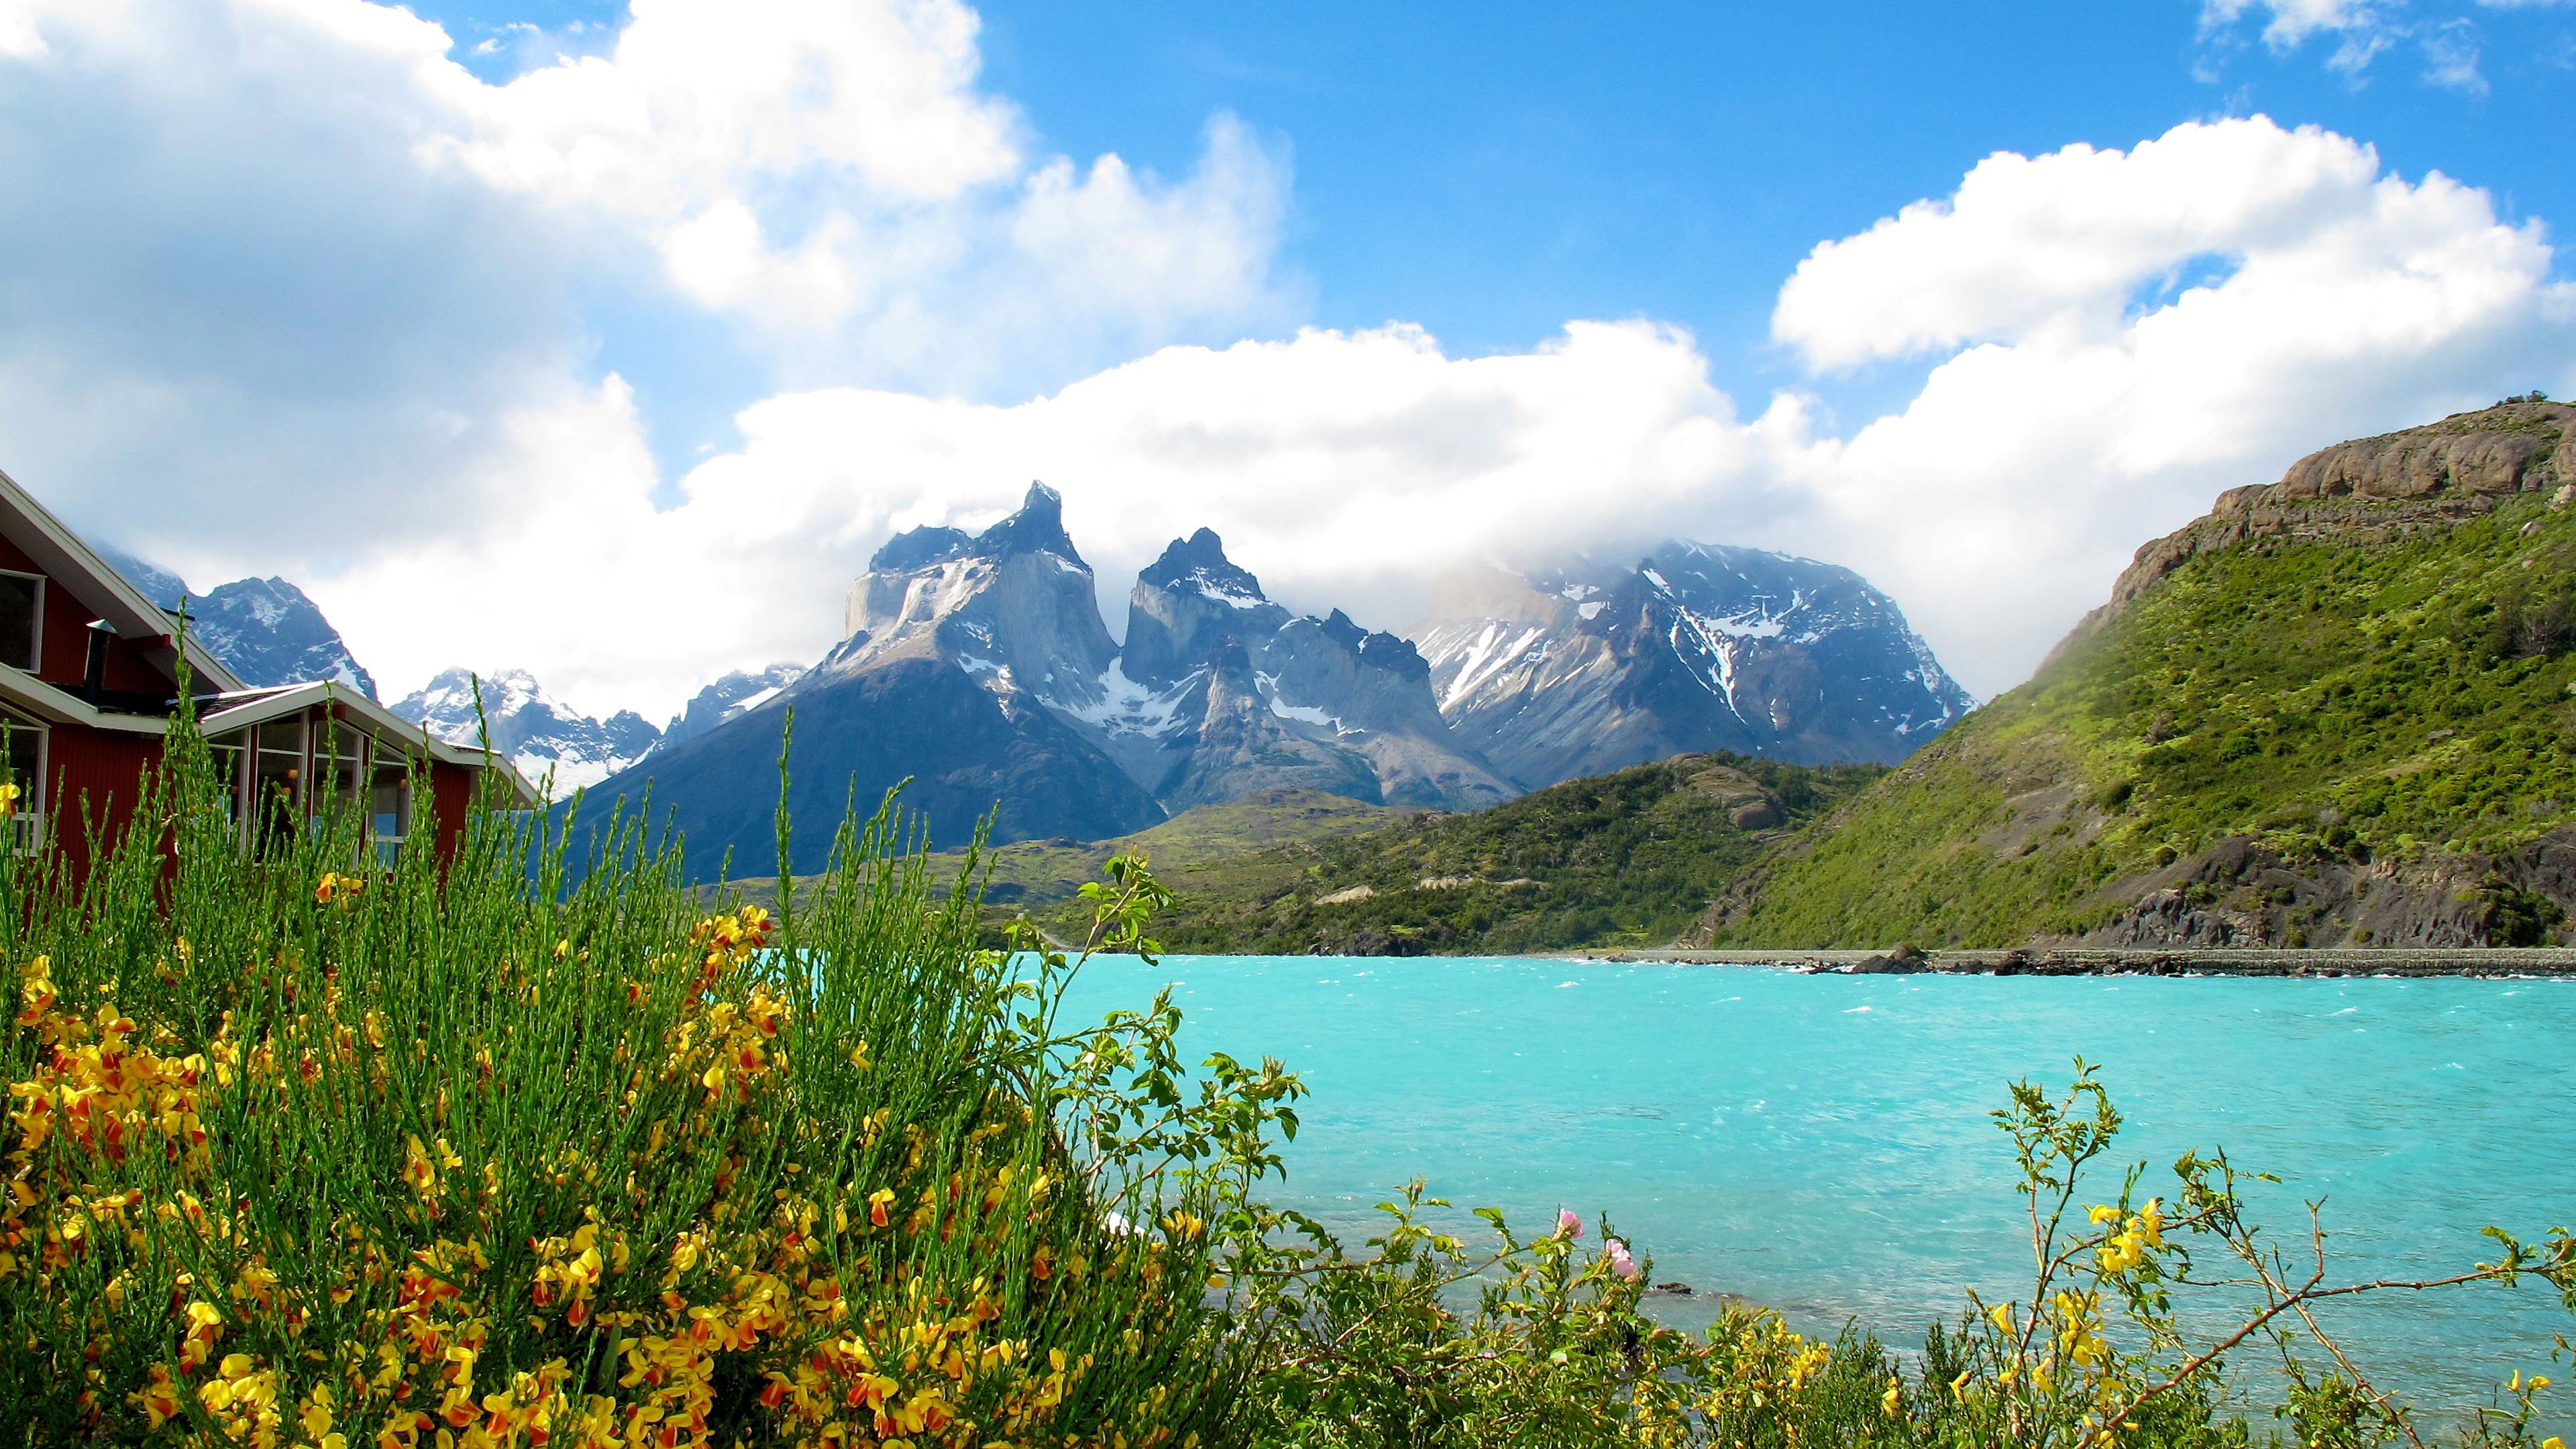 Free Christmas Wallpaper Iphone 4 Cuernos Horns Del Paine Torres Del Paine National Park